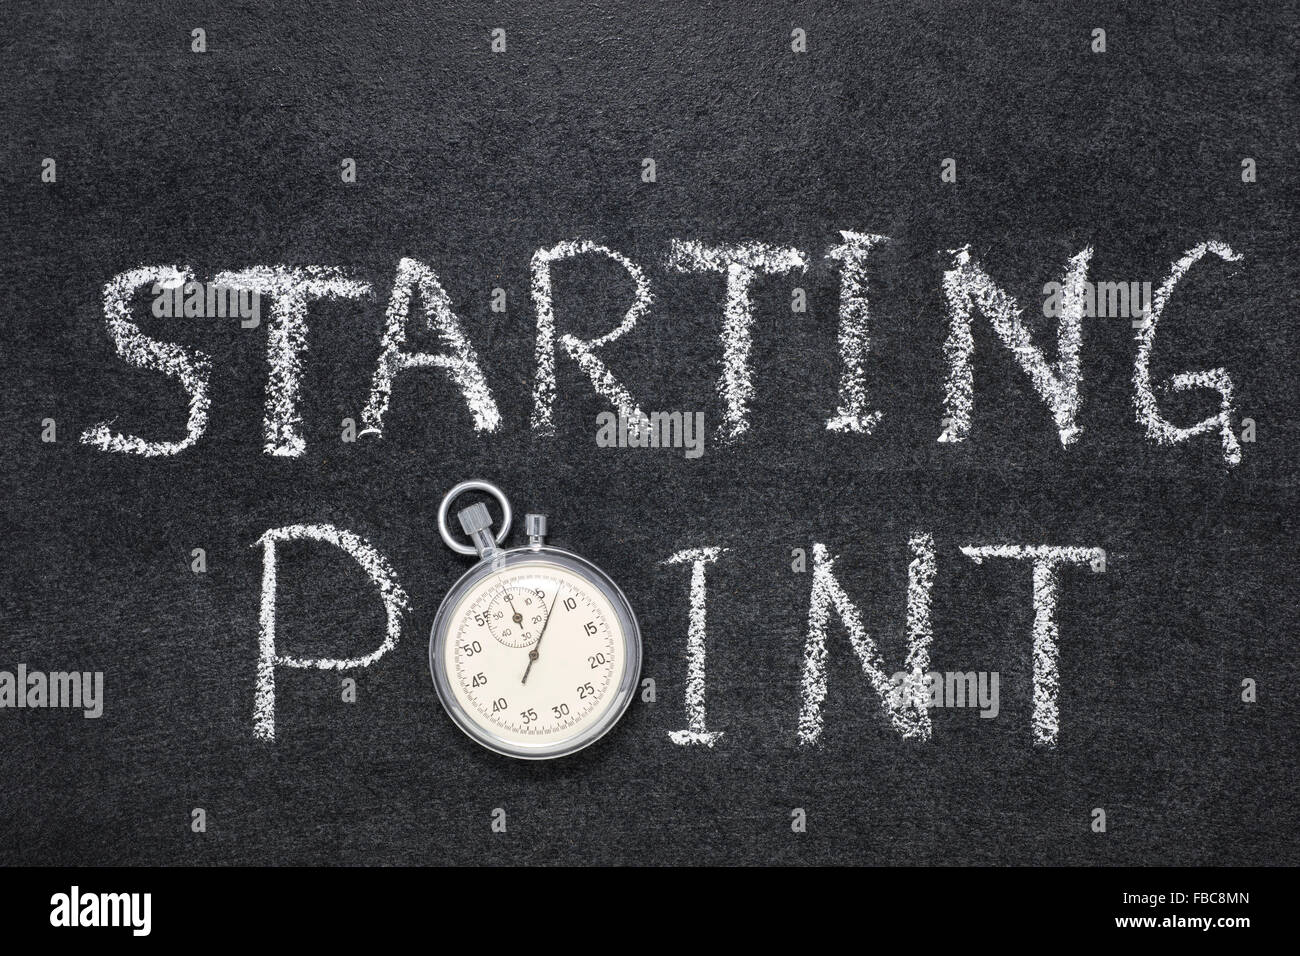 starting point phrase handwritten on chalkboard with vintage precise stopwatch used instead of O - Stock Image